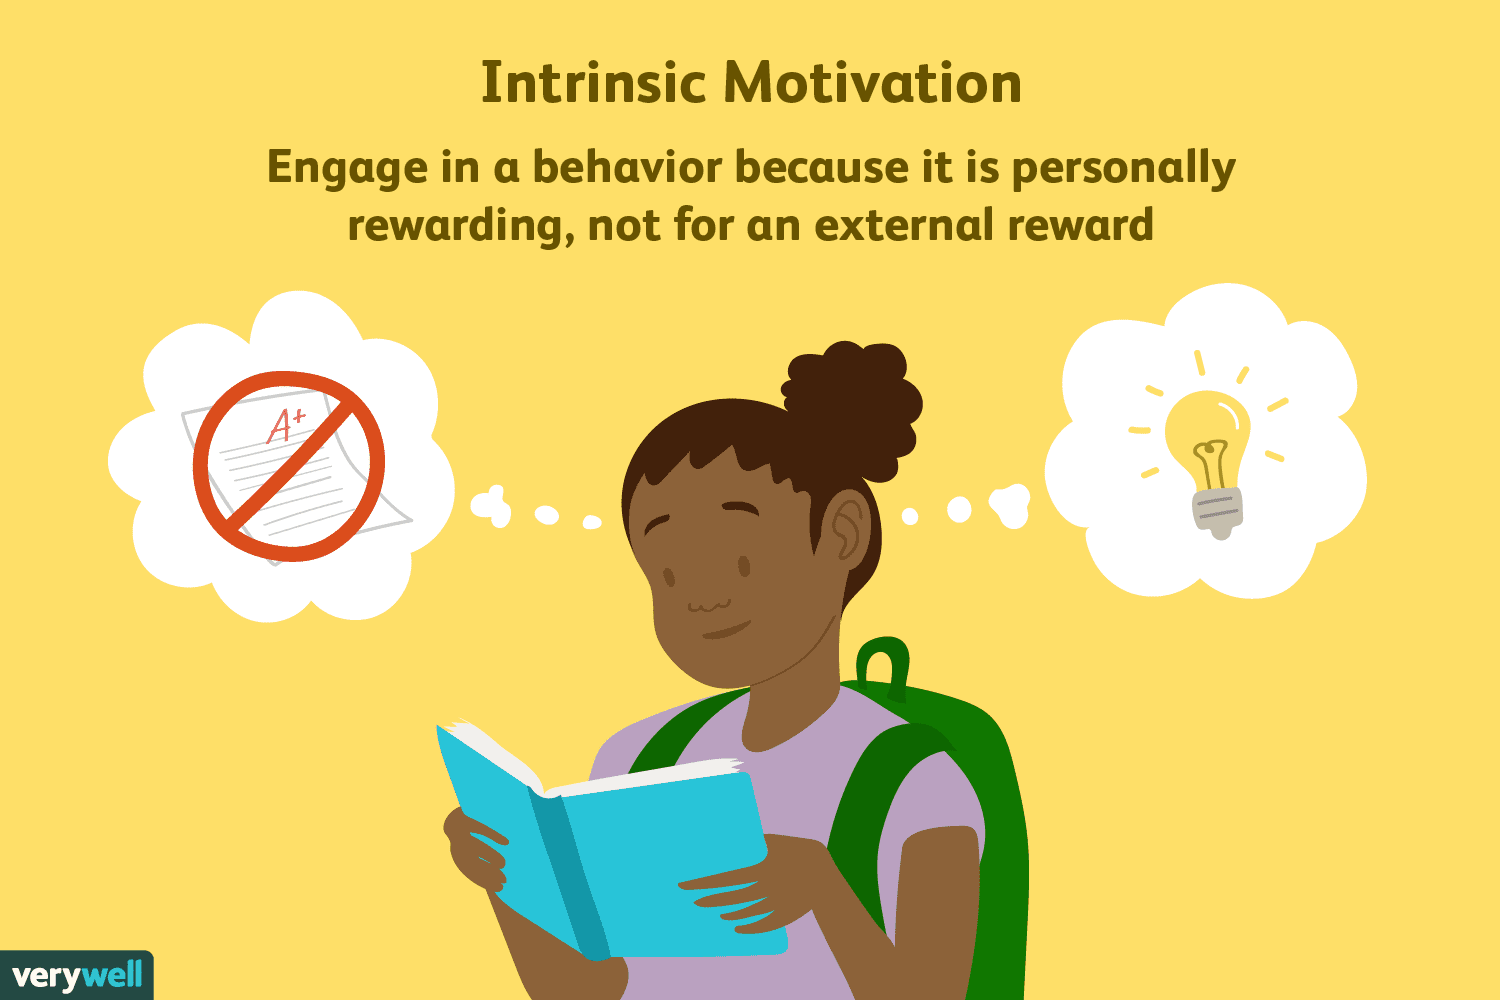 What Does Intrinsic Motivation Mean